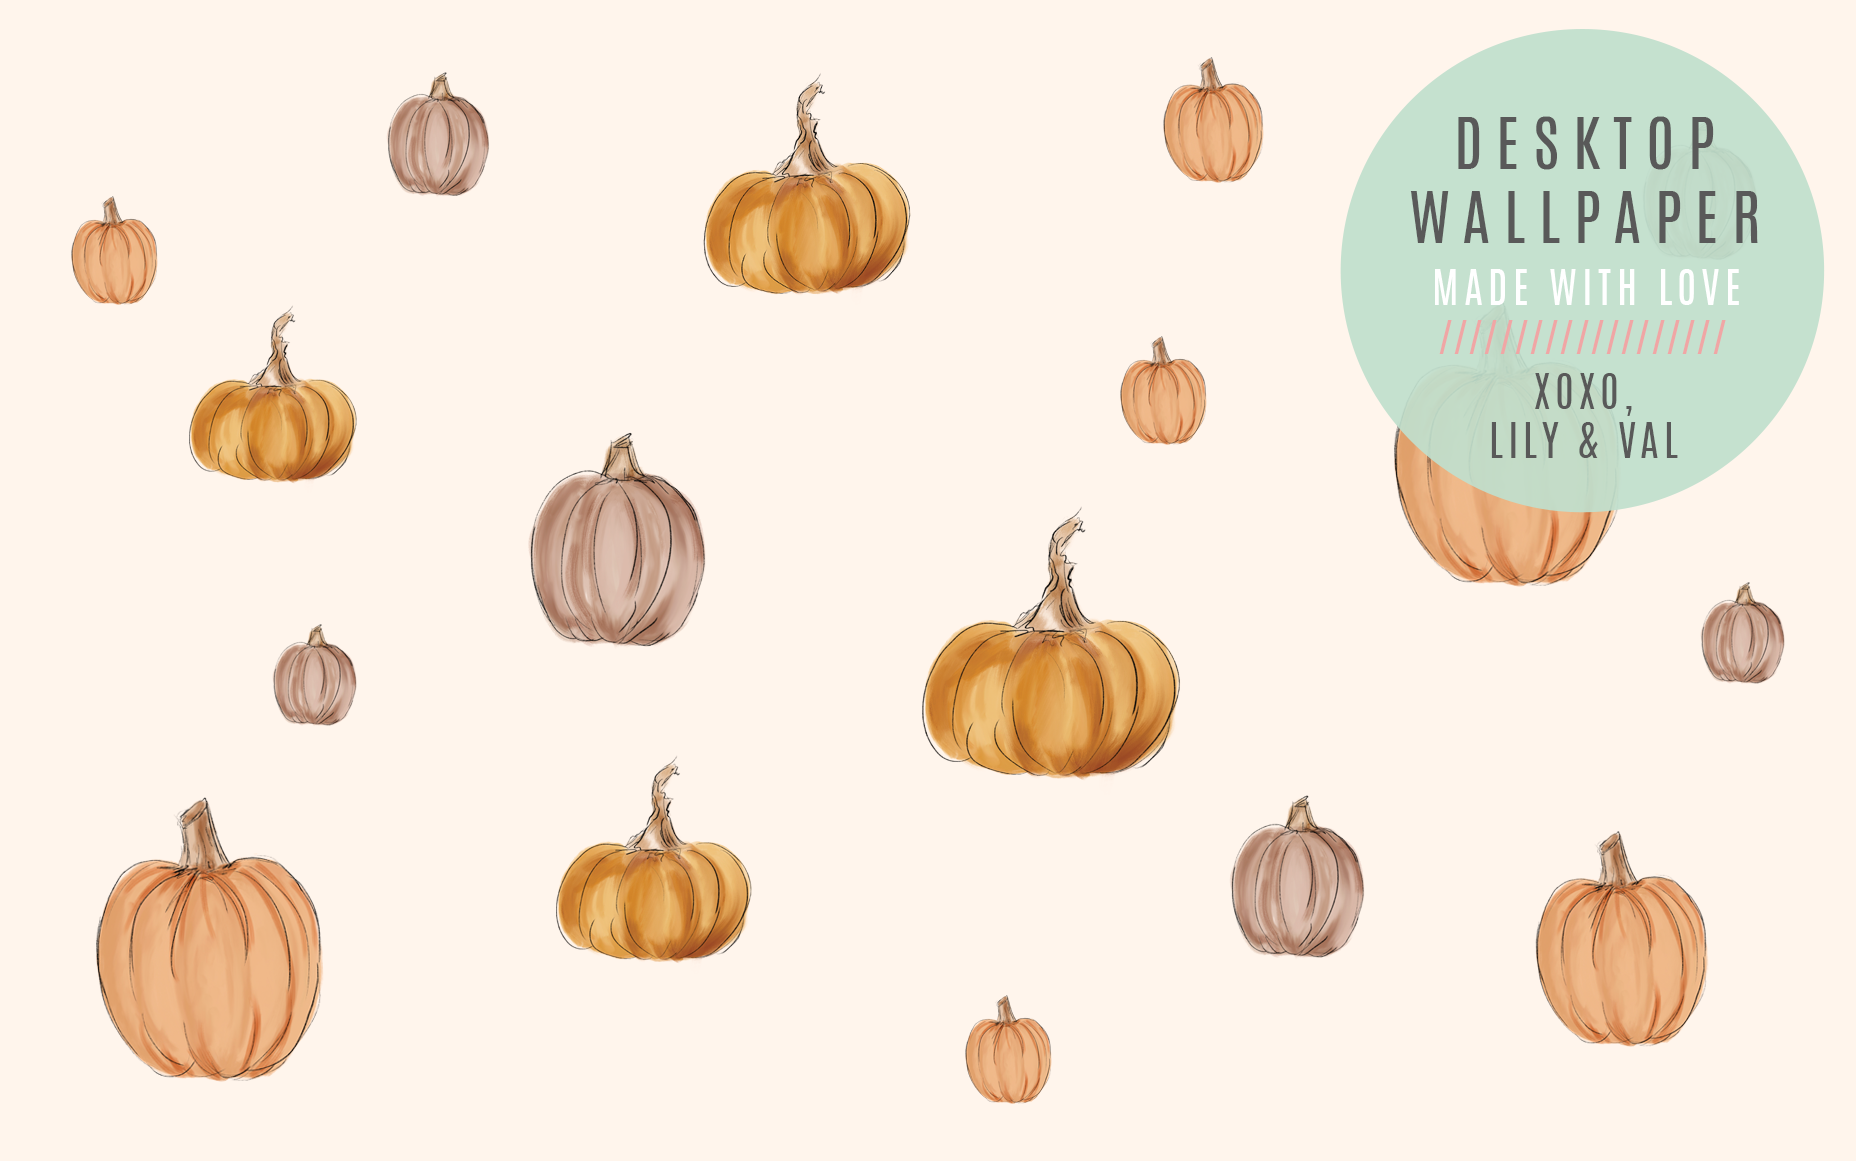 Cute hand-drawn pumpkin desktop computer background for Fall/Autumn